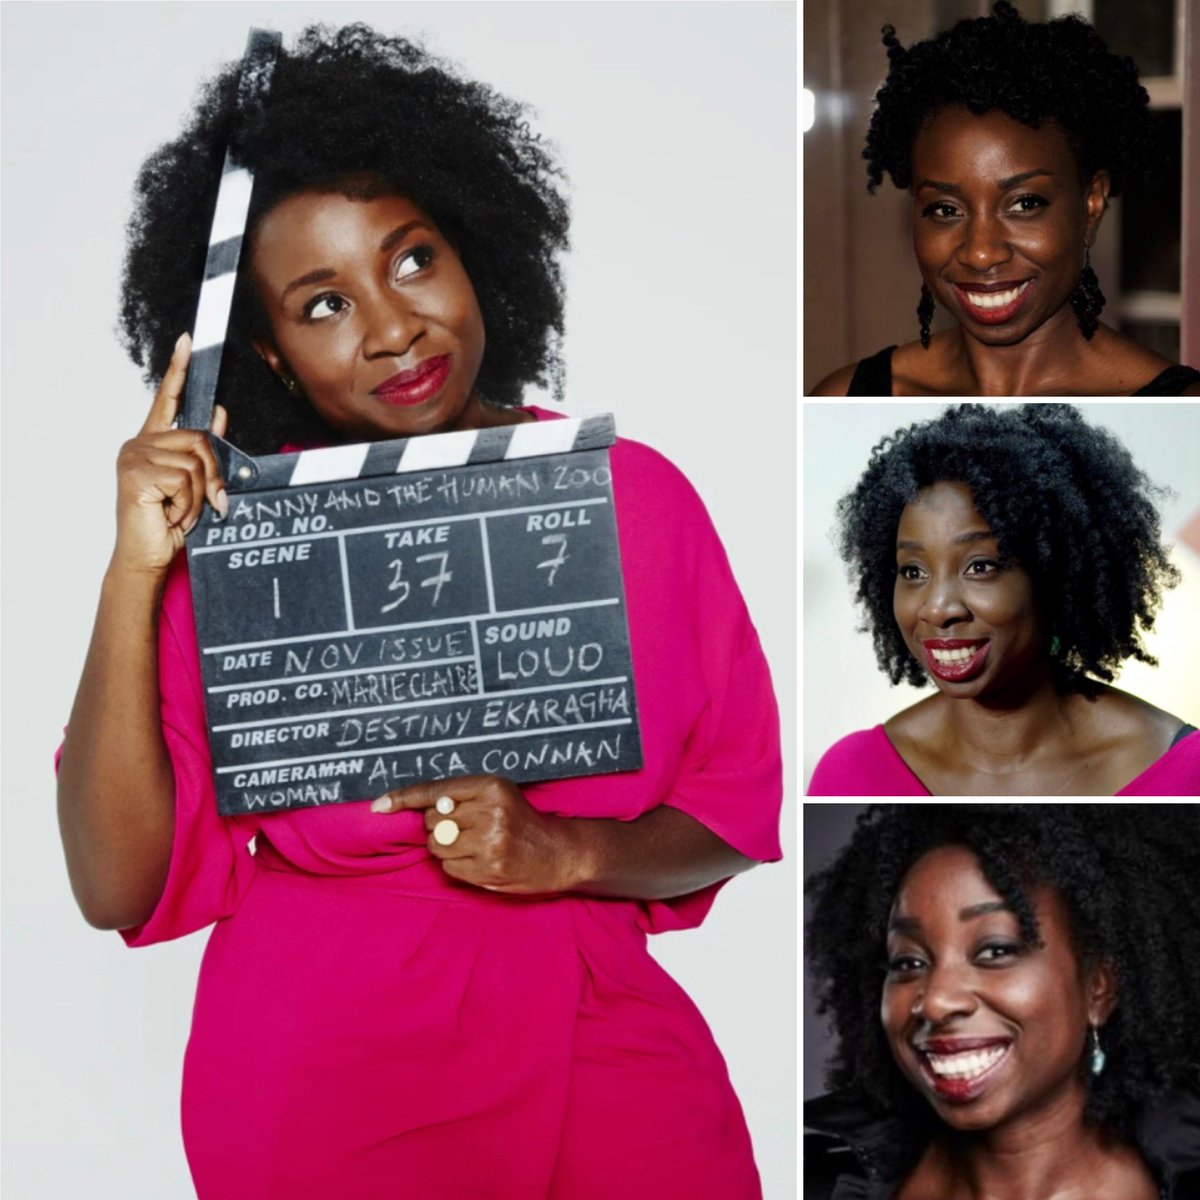 It's #wcw & today we celebrate Destiny Ekaragha 🎞 🎥.  She is a 🇬🇧🇳🇬 British Nigerian #writer & #director (and is in fact only the THIRD British Black woman to have directed a feature-length film that was given cinema distribution in the UK).  #representationmatters